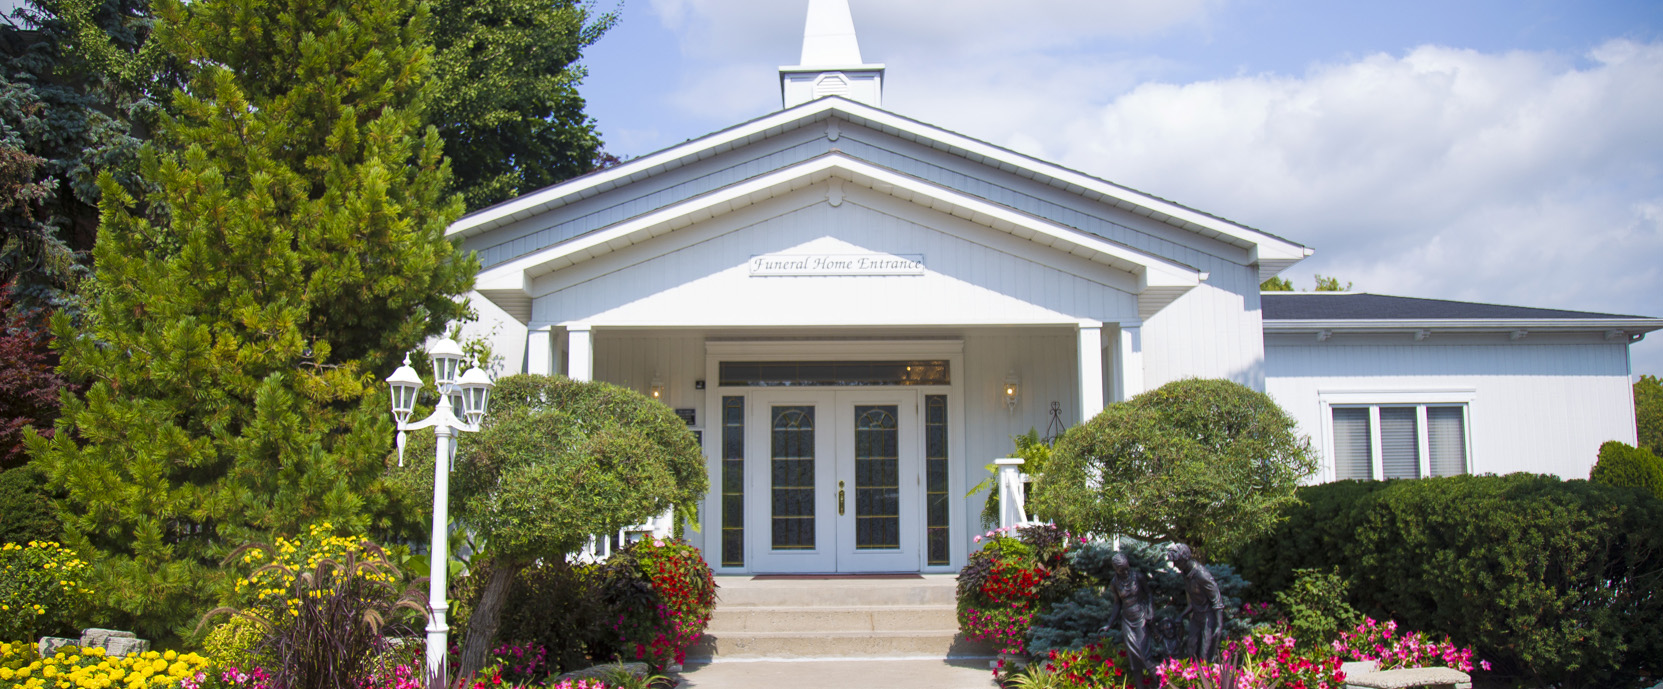 Home Welcome To Northcutt Elliott Funeral Home Located In